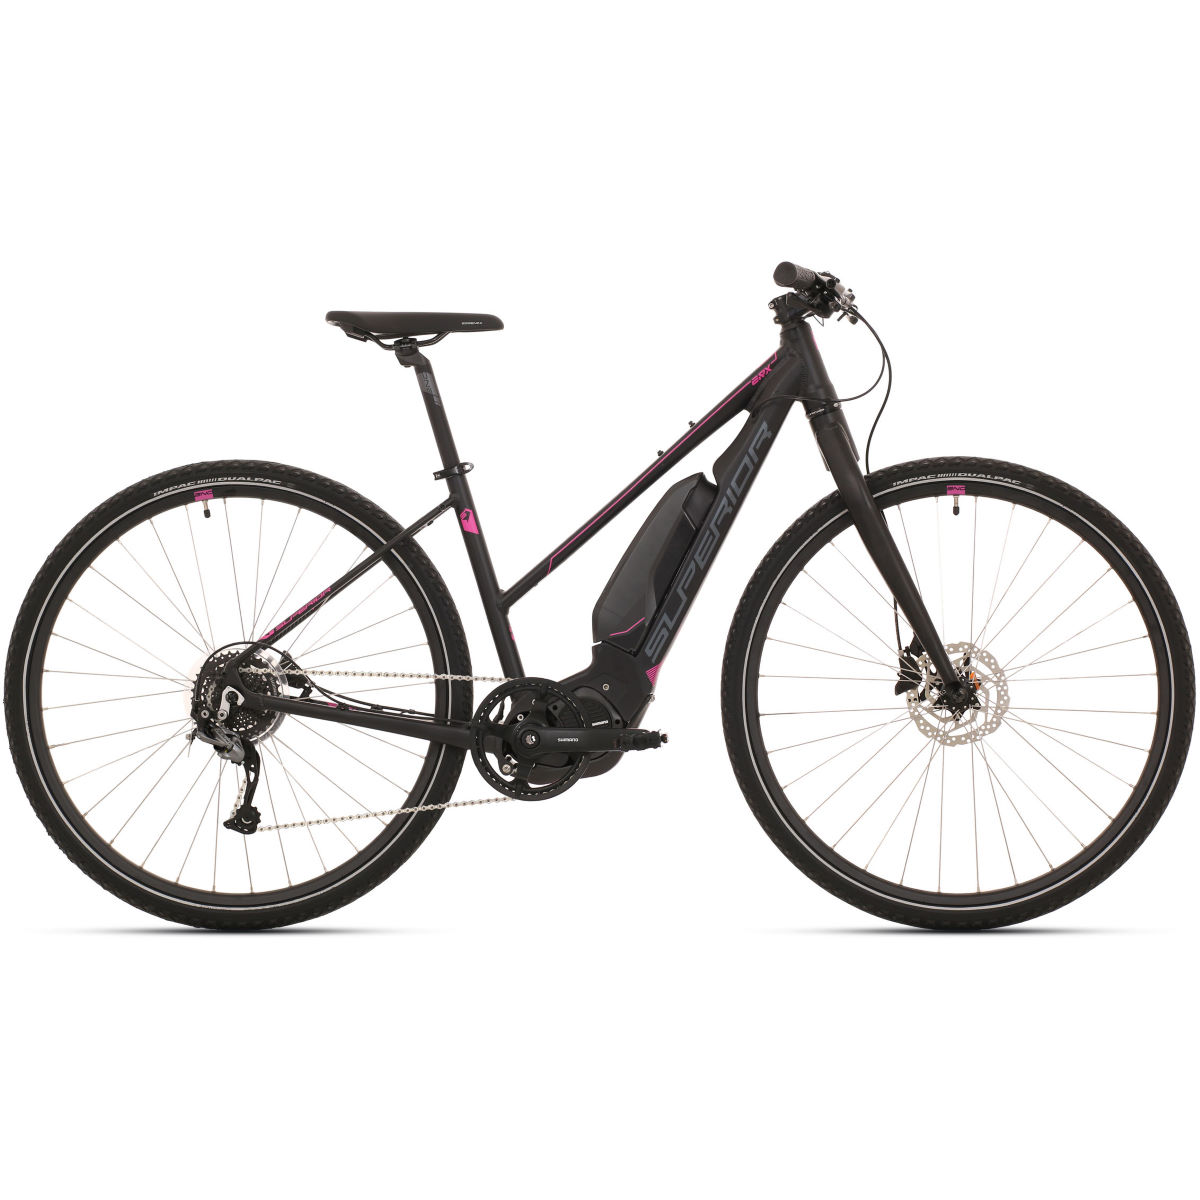 Superior Superior eRX 630 Lady Urban E-Bike (2020)   Electric Urban Bikes